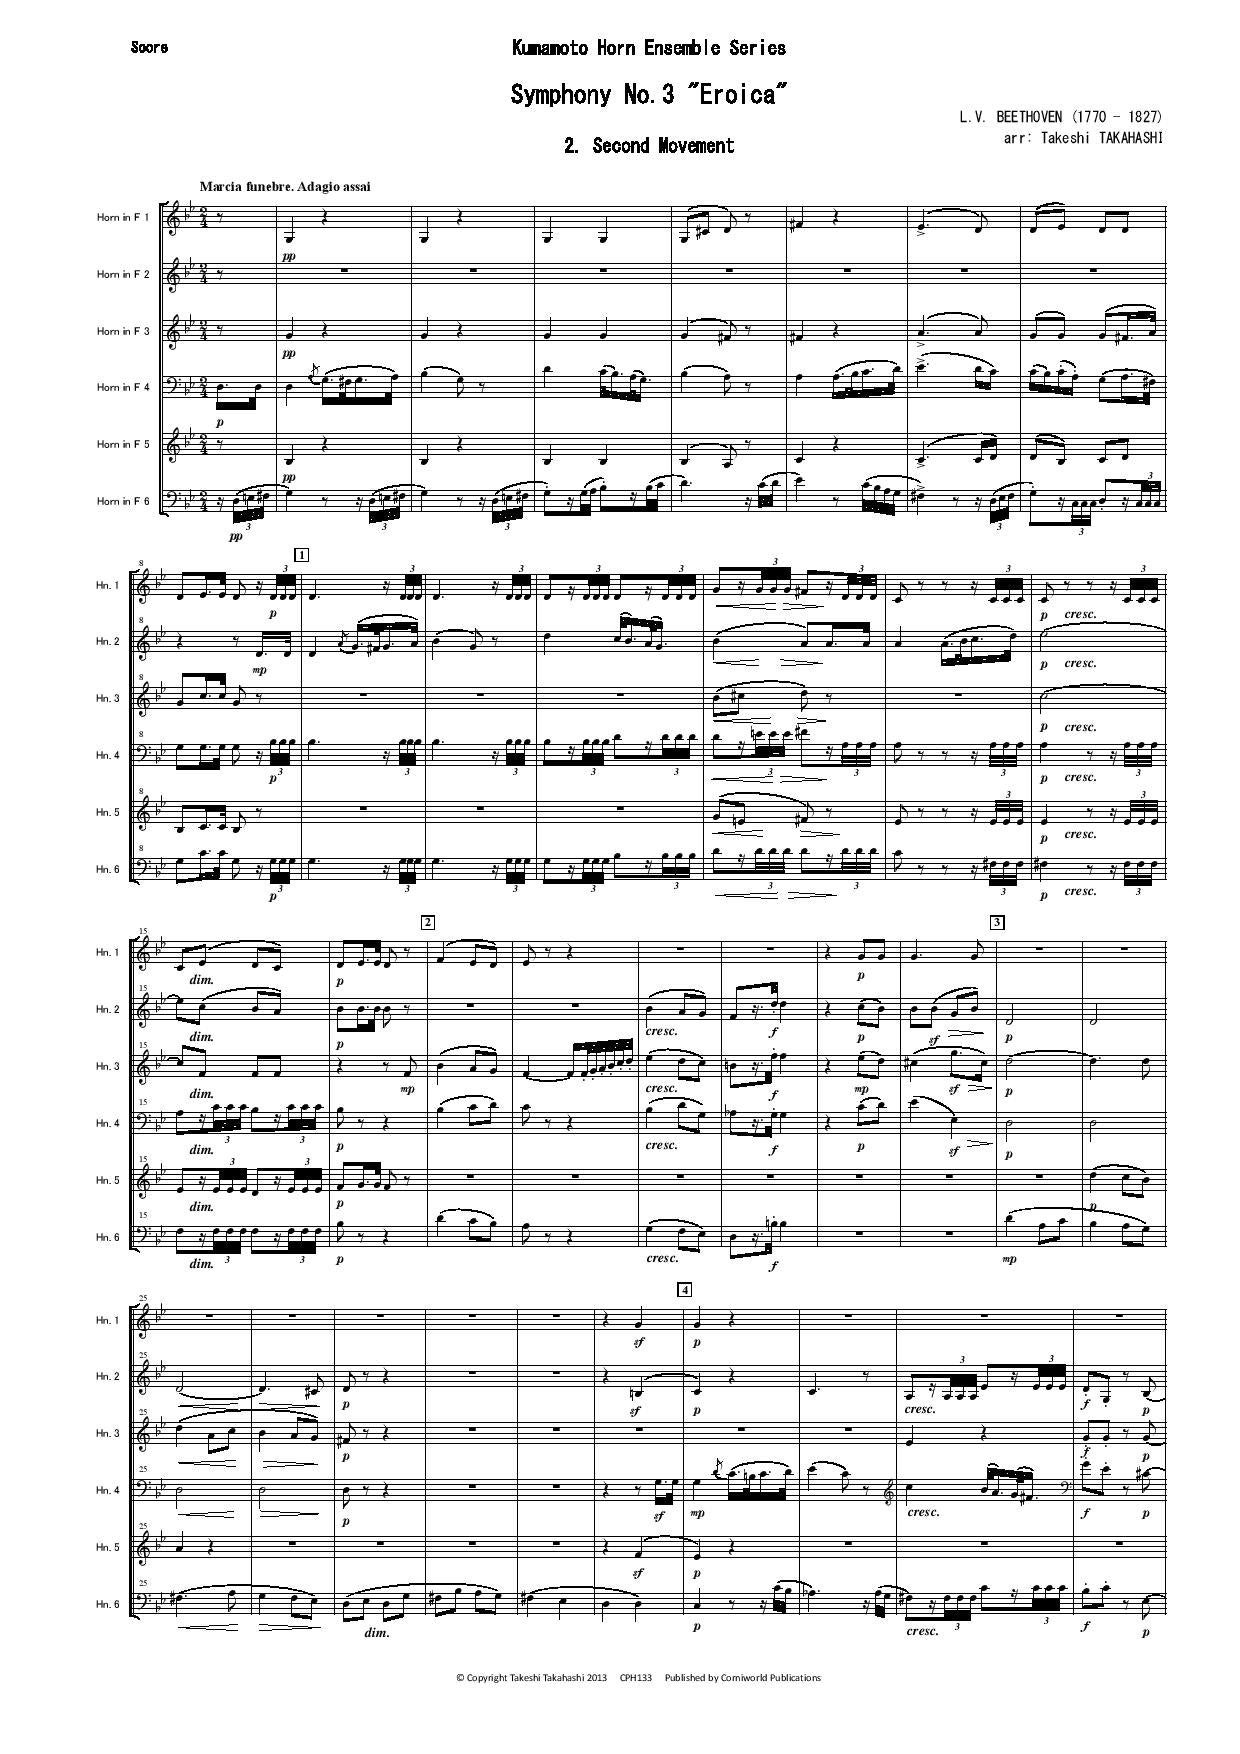 2nd Mvt from Symphony No.3 (Beethoven) CPH133